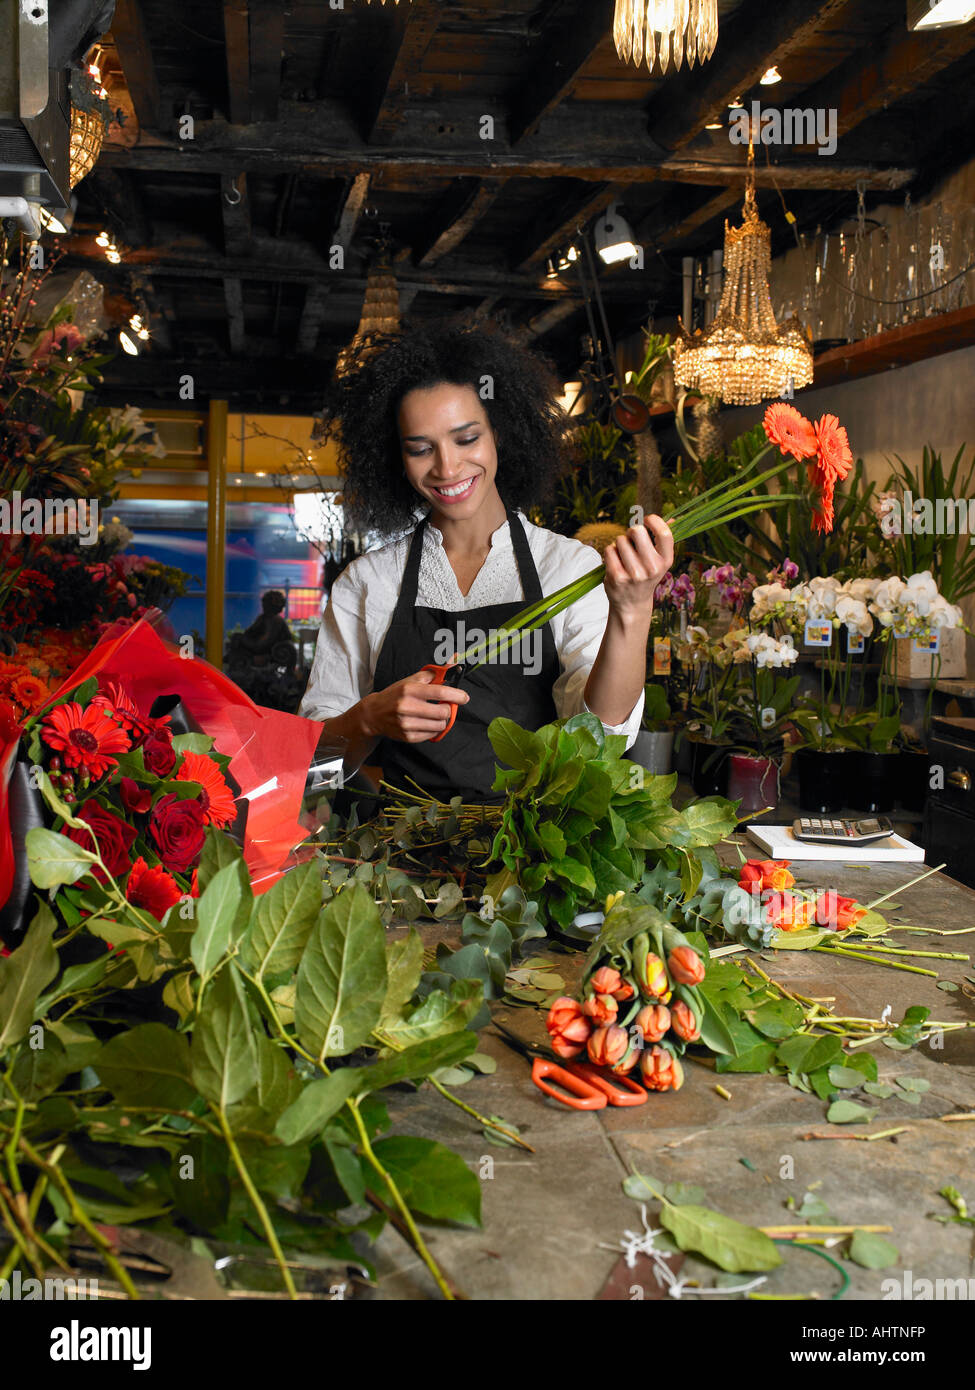 Young female florist trimming flower stems in shop, smiling Stock Photo